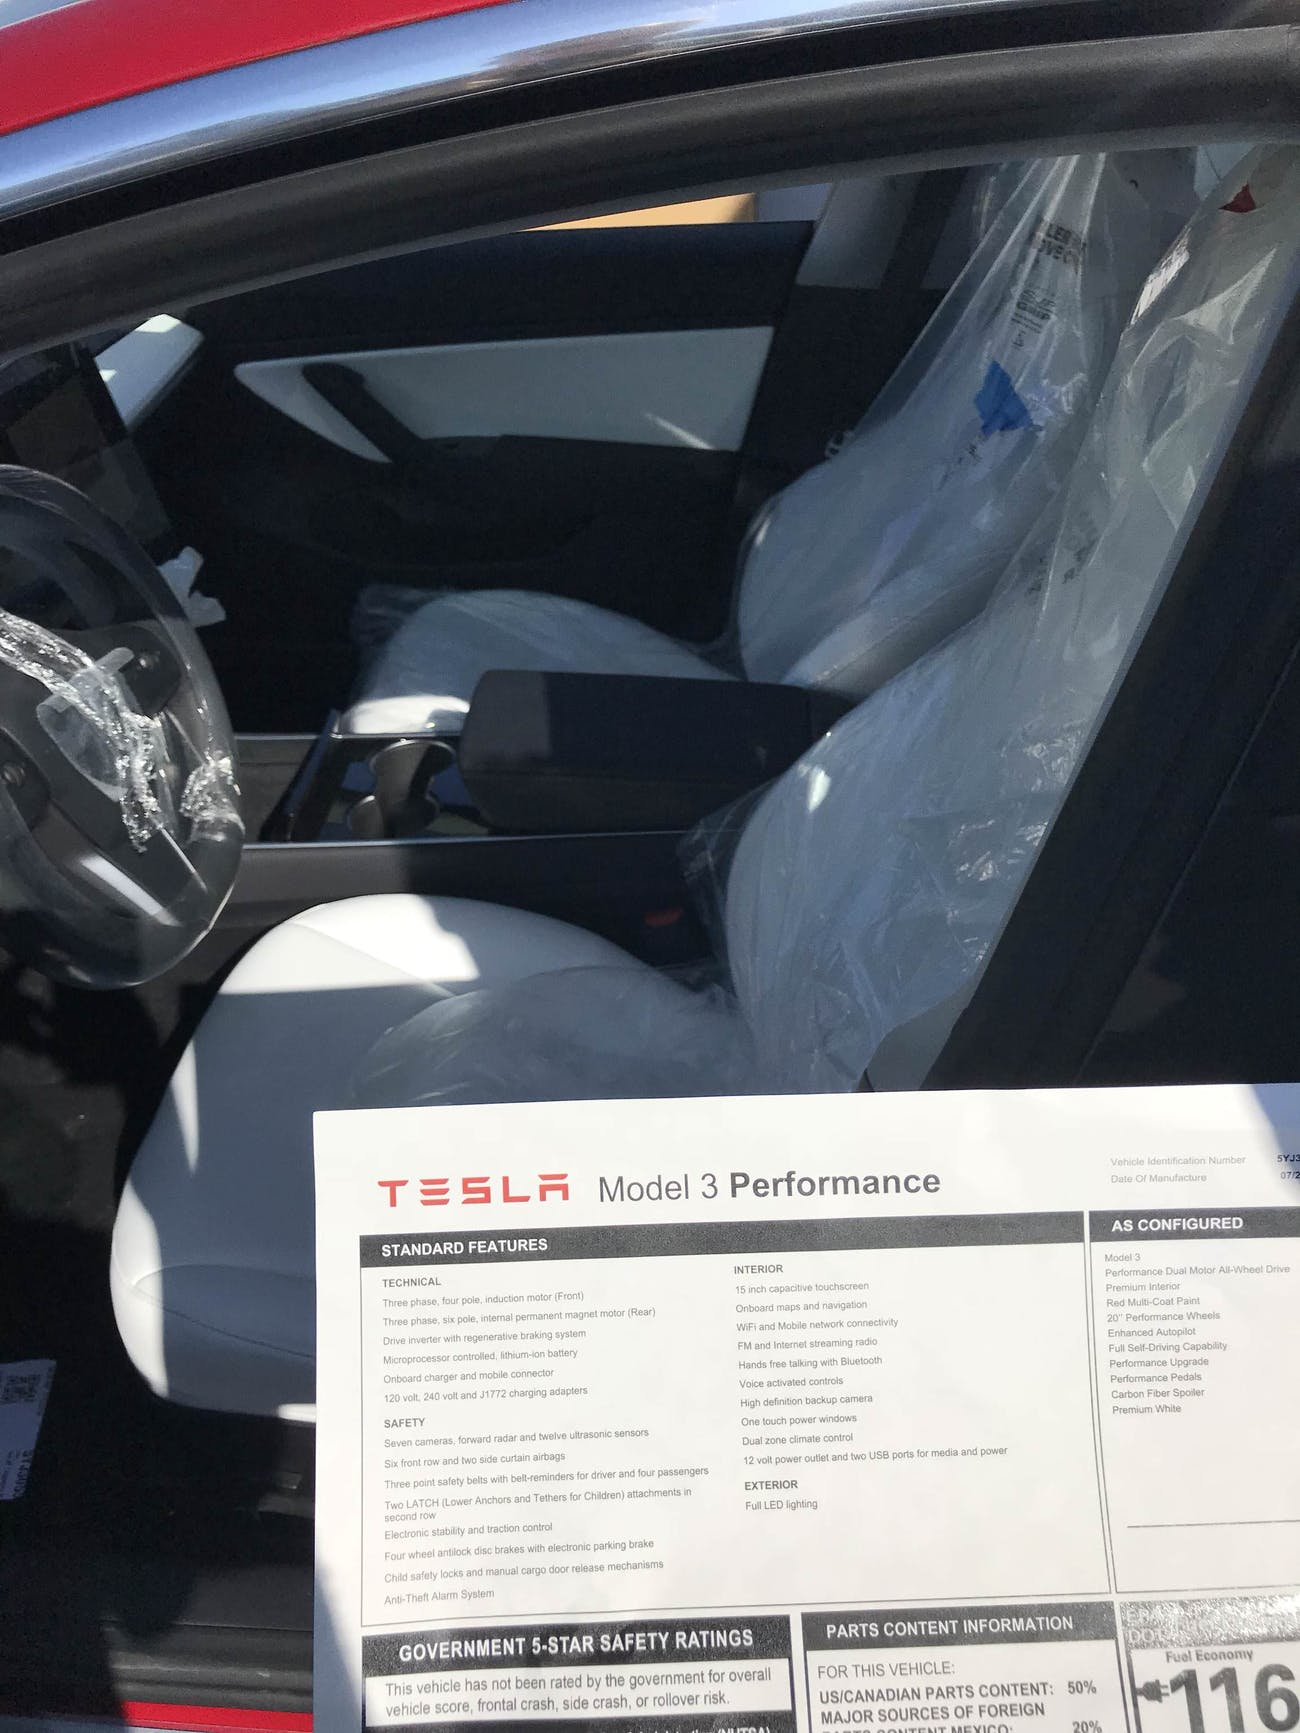 Tesla Model 3 performance edition sticker.